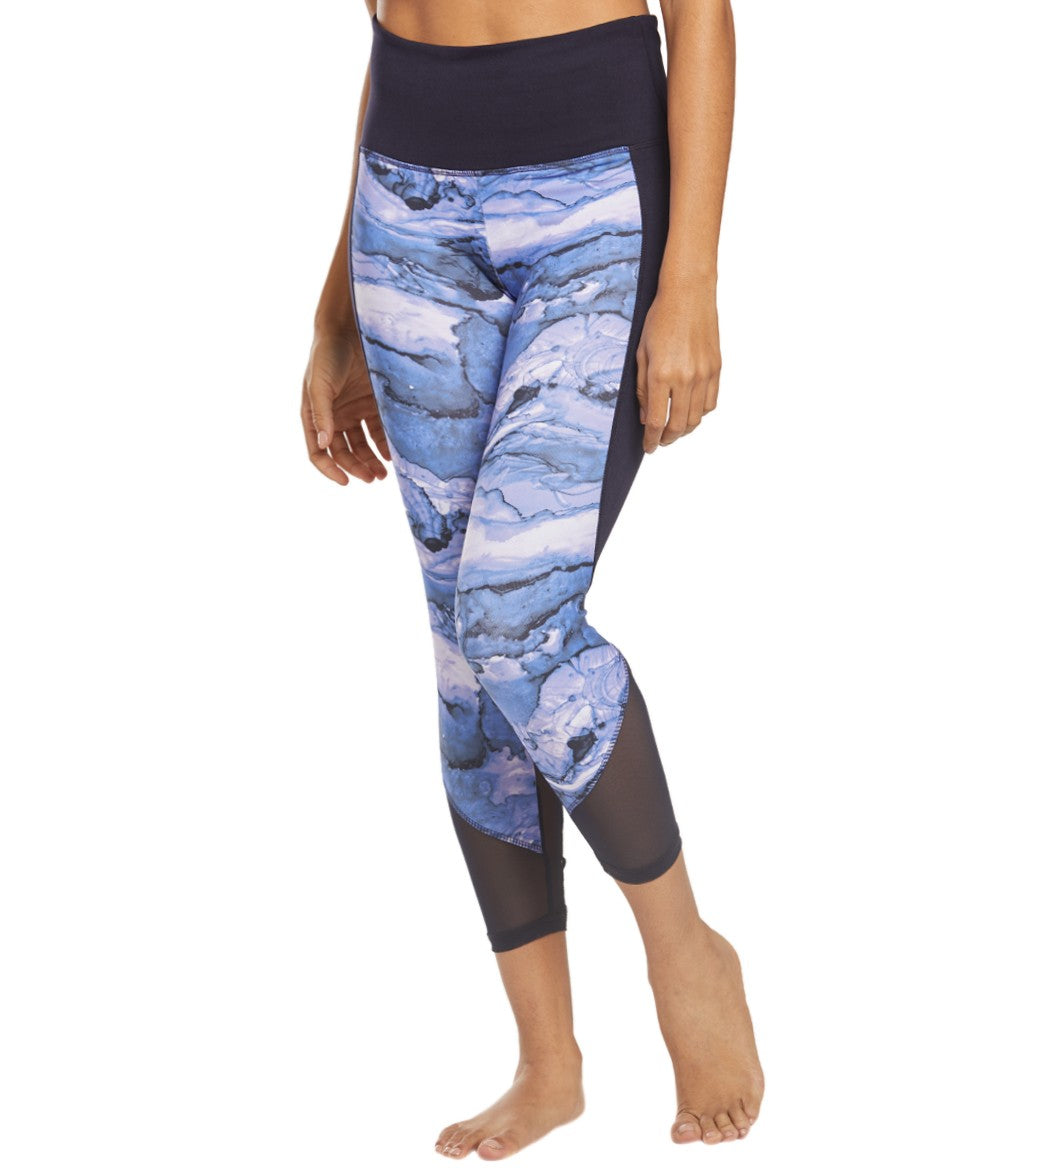 Balance Collection Nova High Rise Yoga Capri Pants - Silverlake Watercolor Cotton